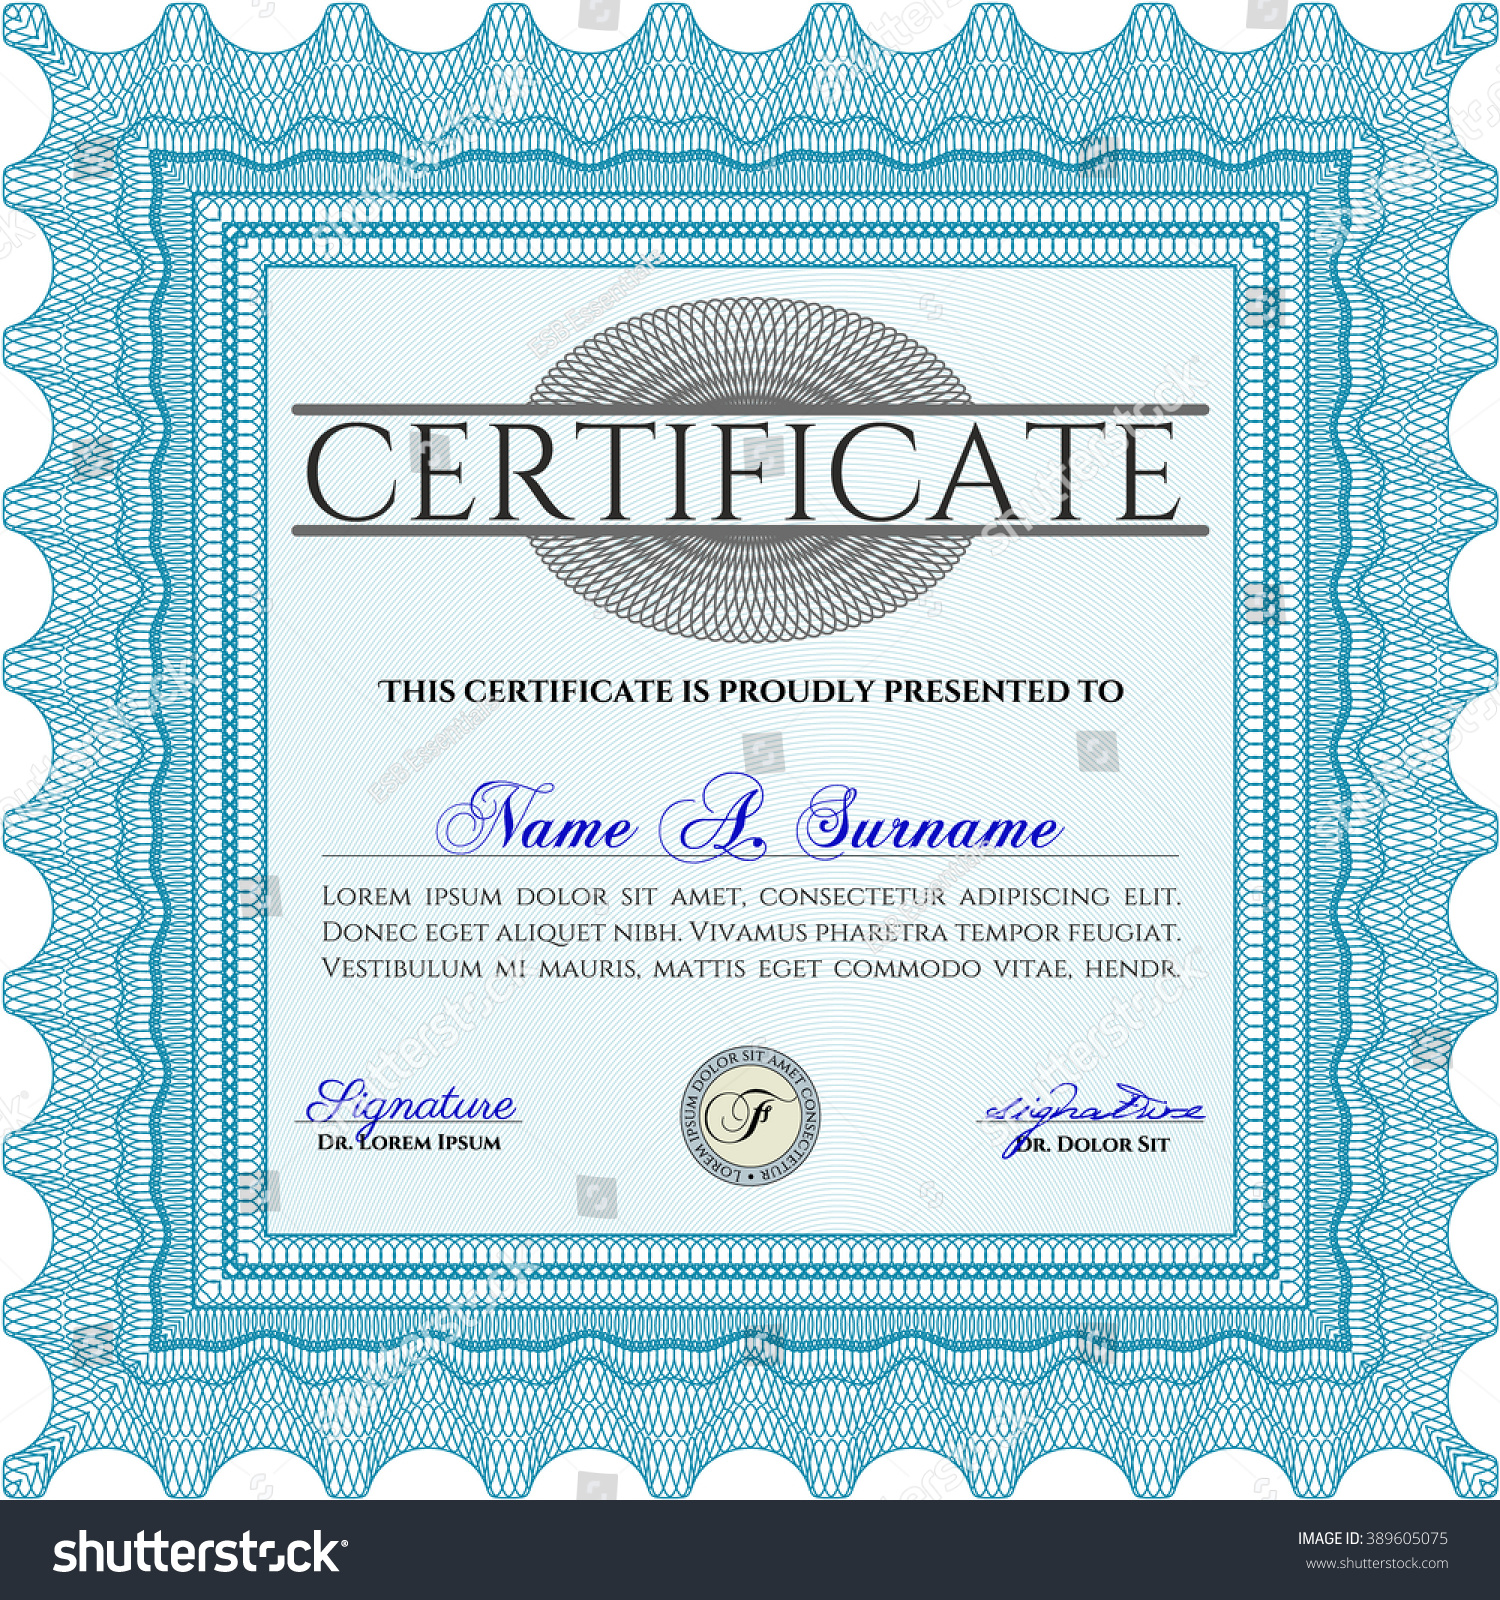 Blue certificate completion vector job reference letter template light blue certificate template diploma template stock vector stock vector light blue certificate template or diploma yadclub Gallery